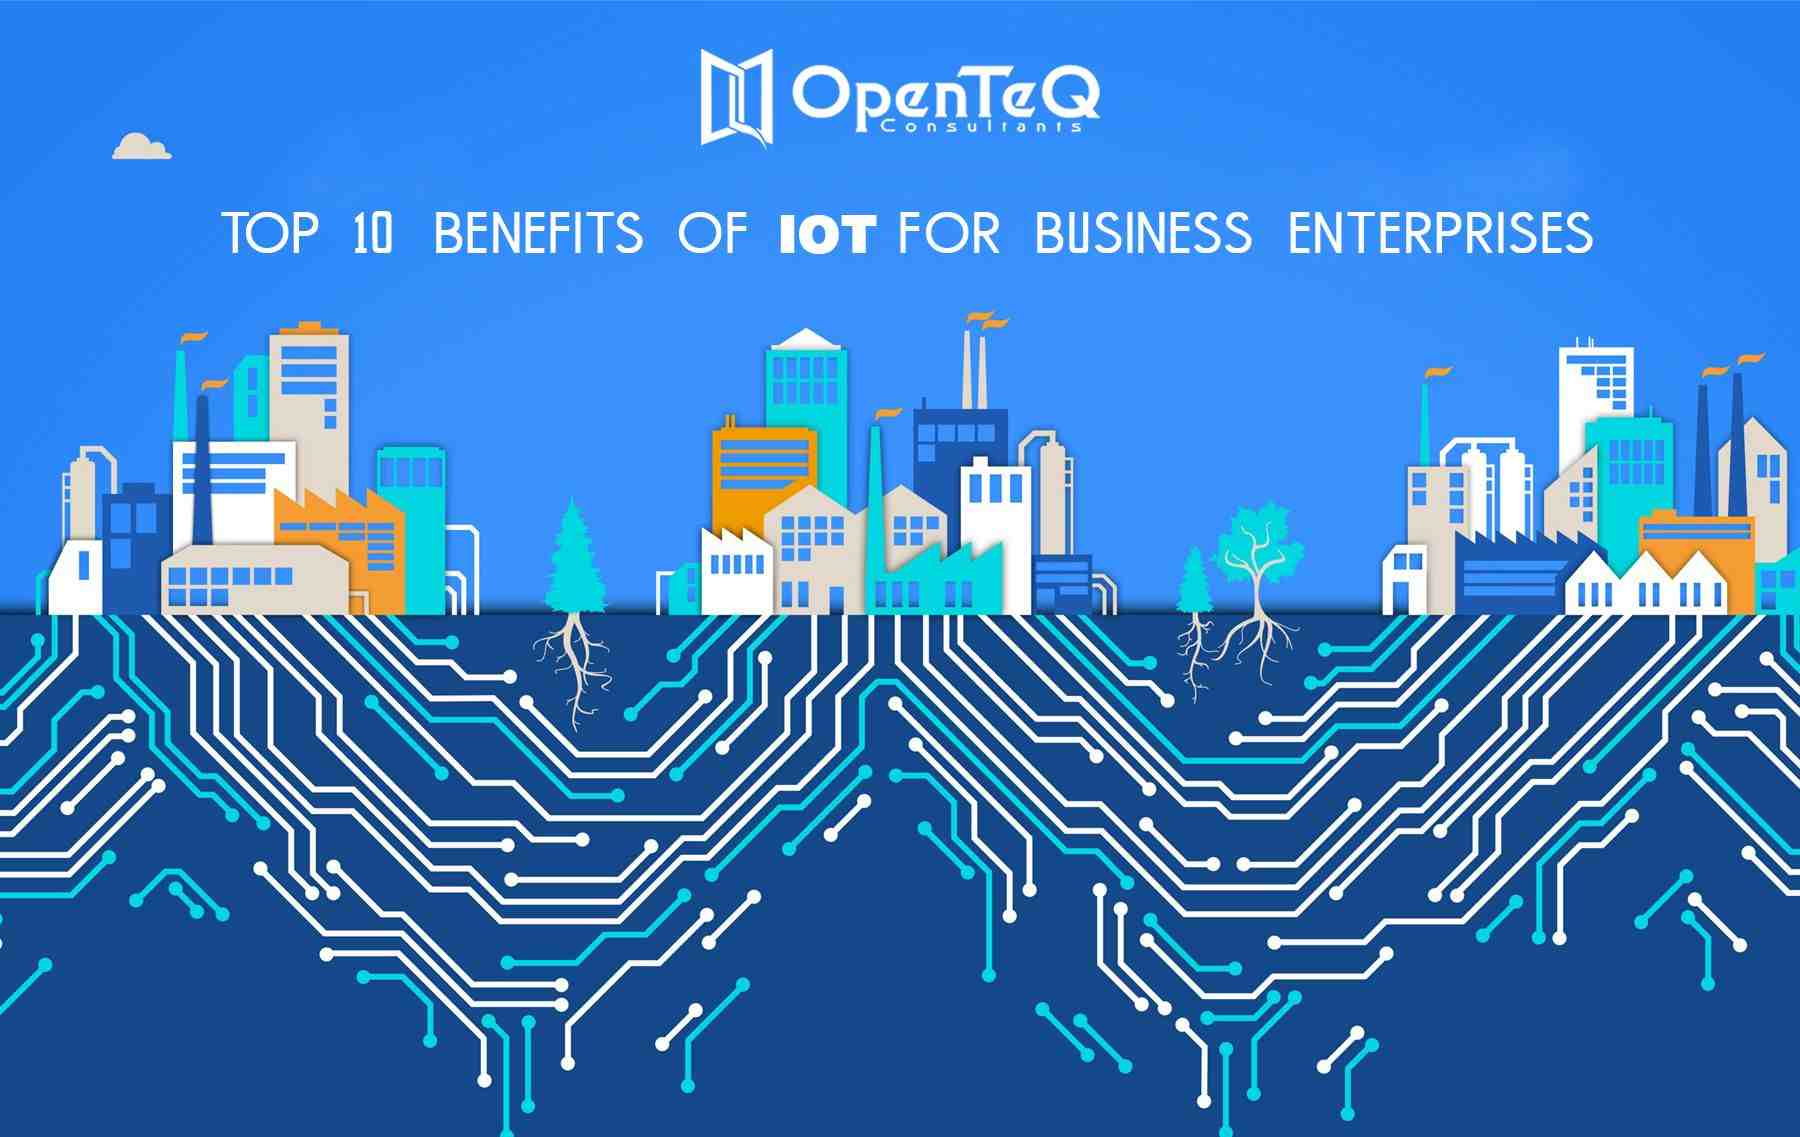 Top 10 Benefits of IoT for Business enterprise